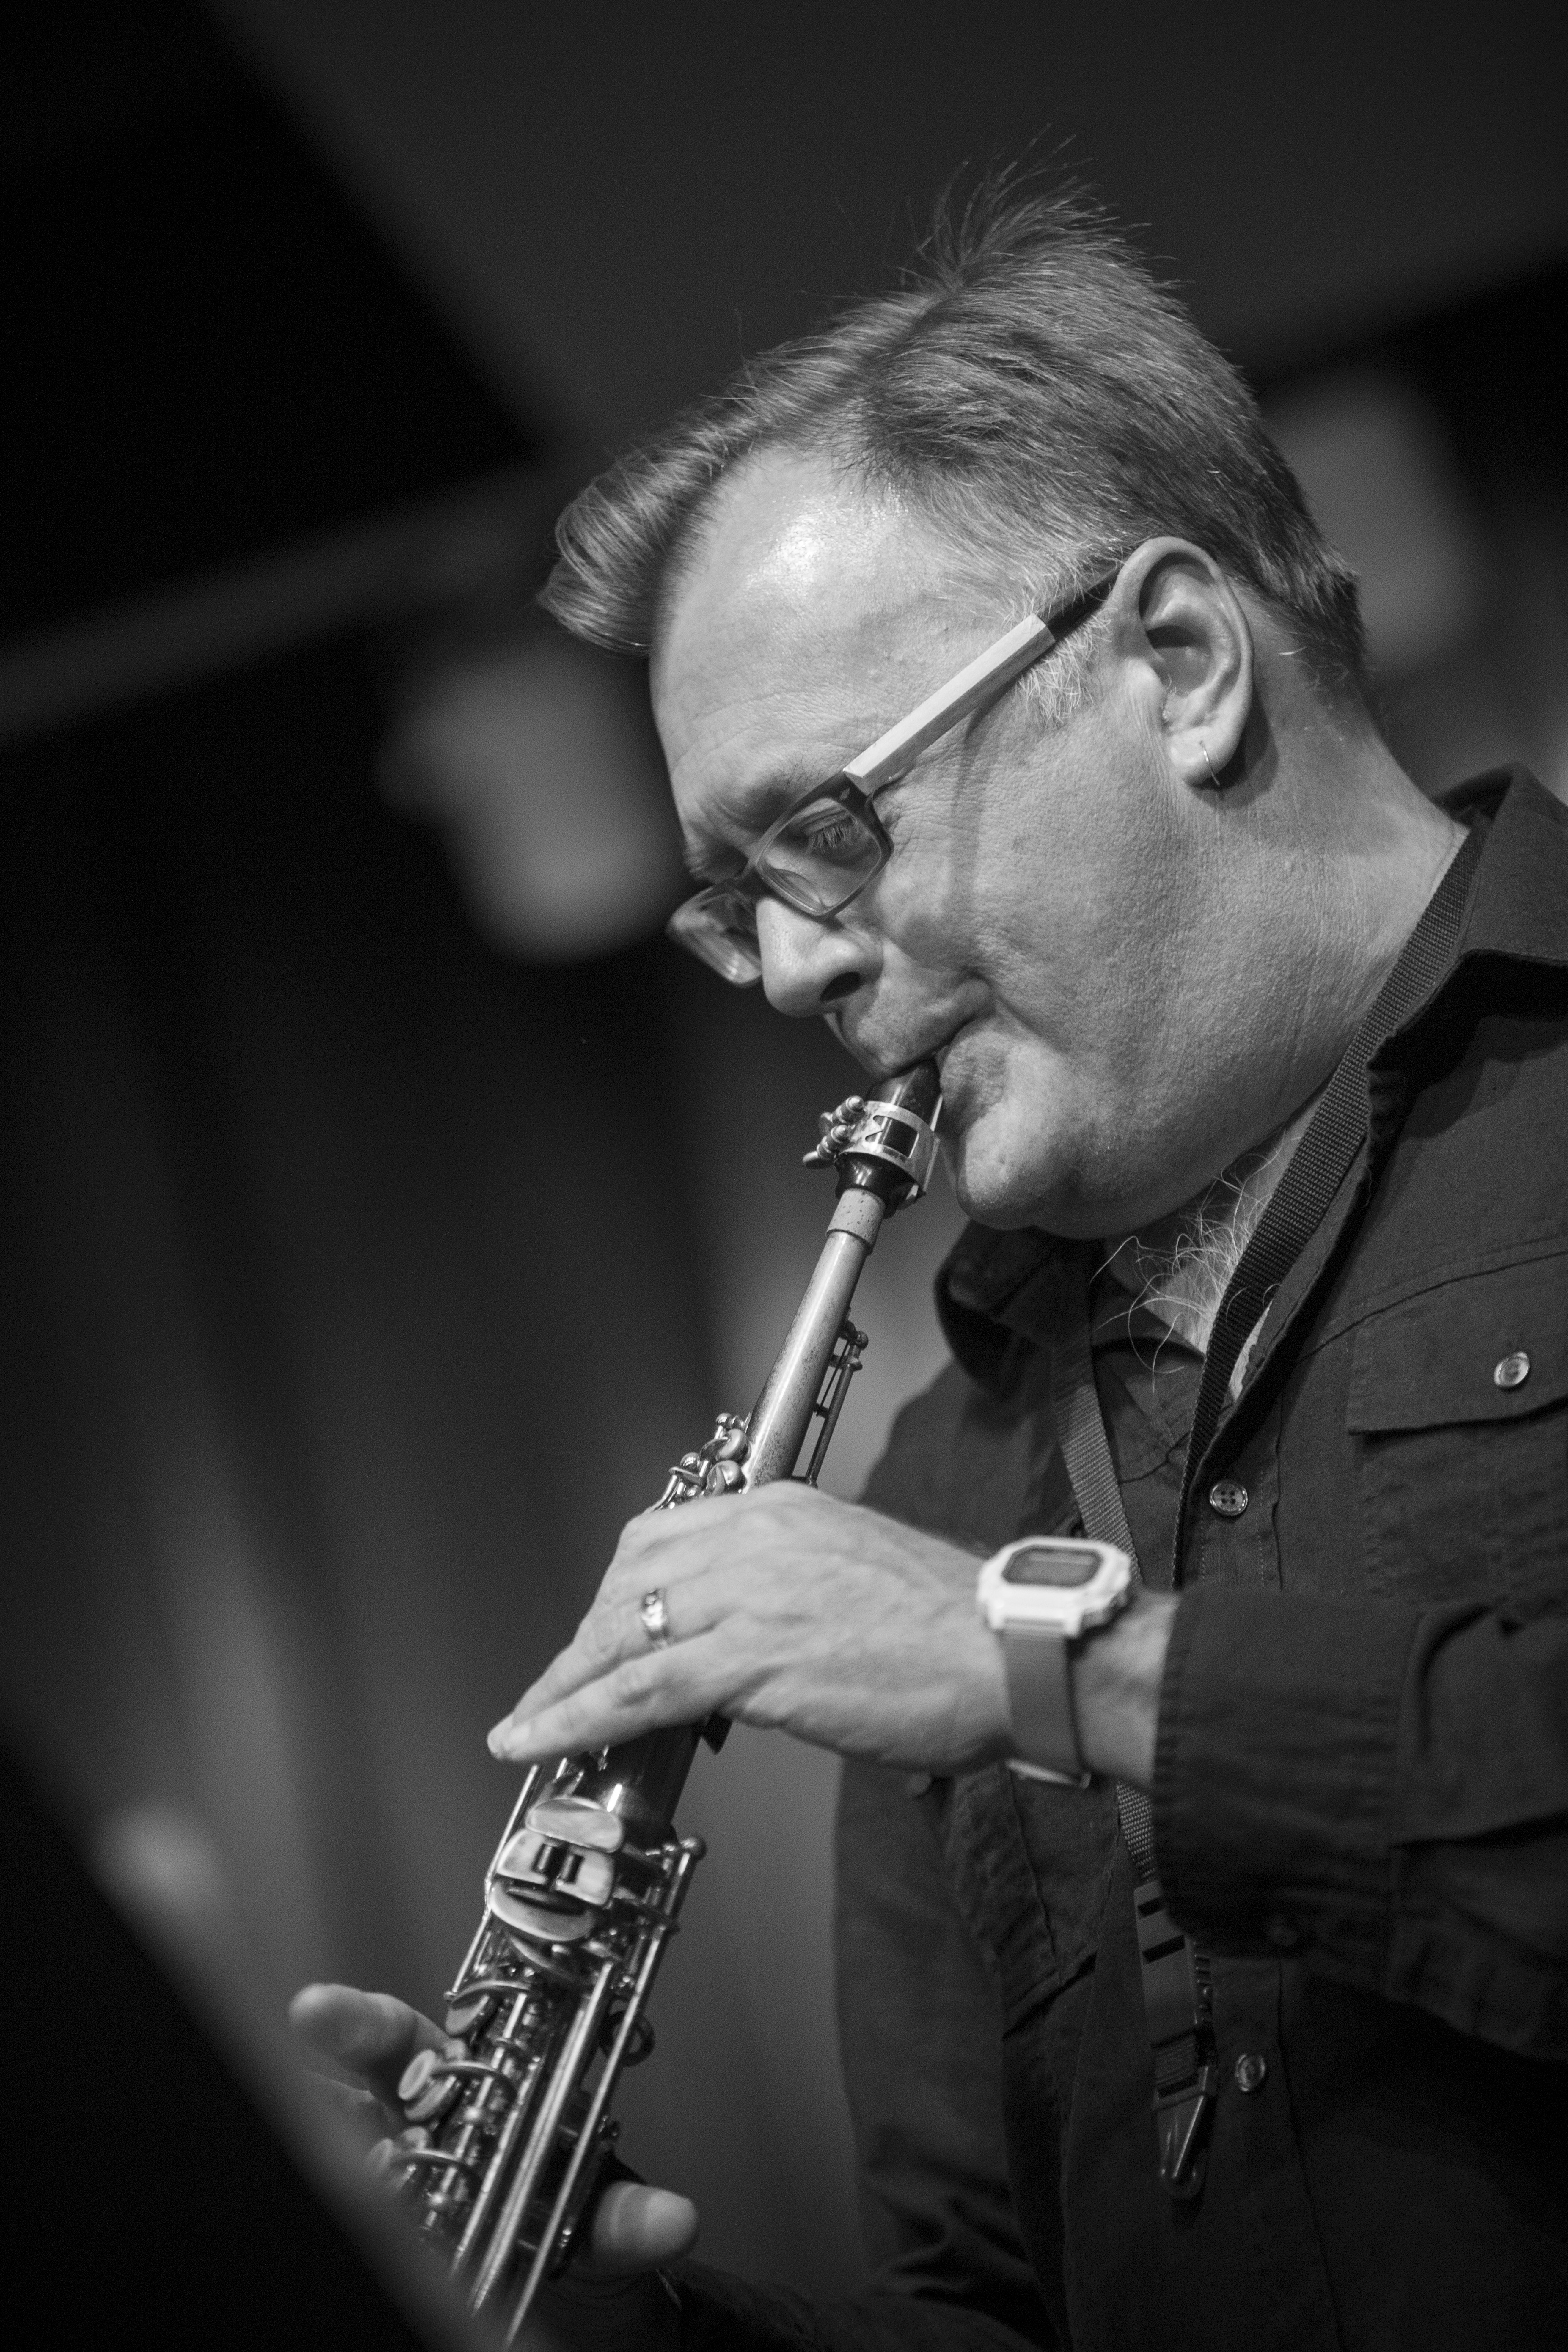 Nathan Hanson on the Saxophone Cutting Edge in Two Formats